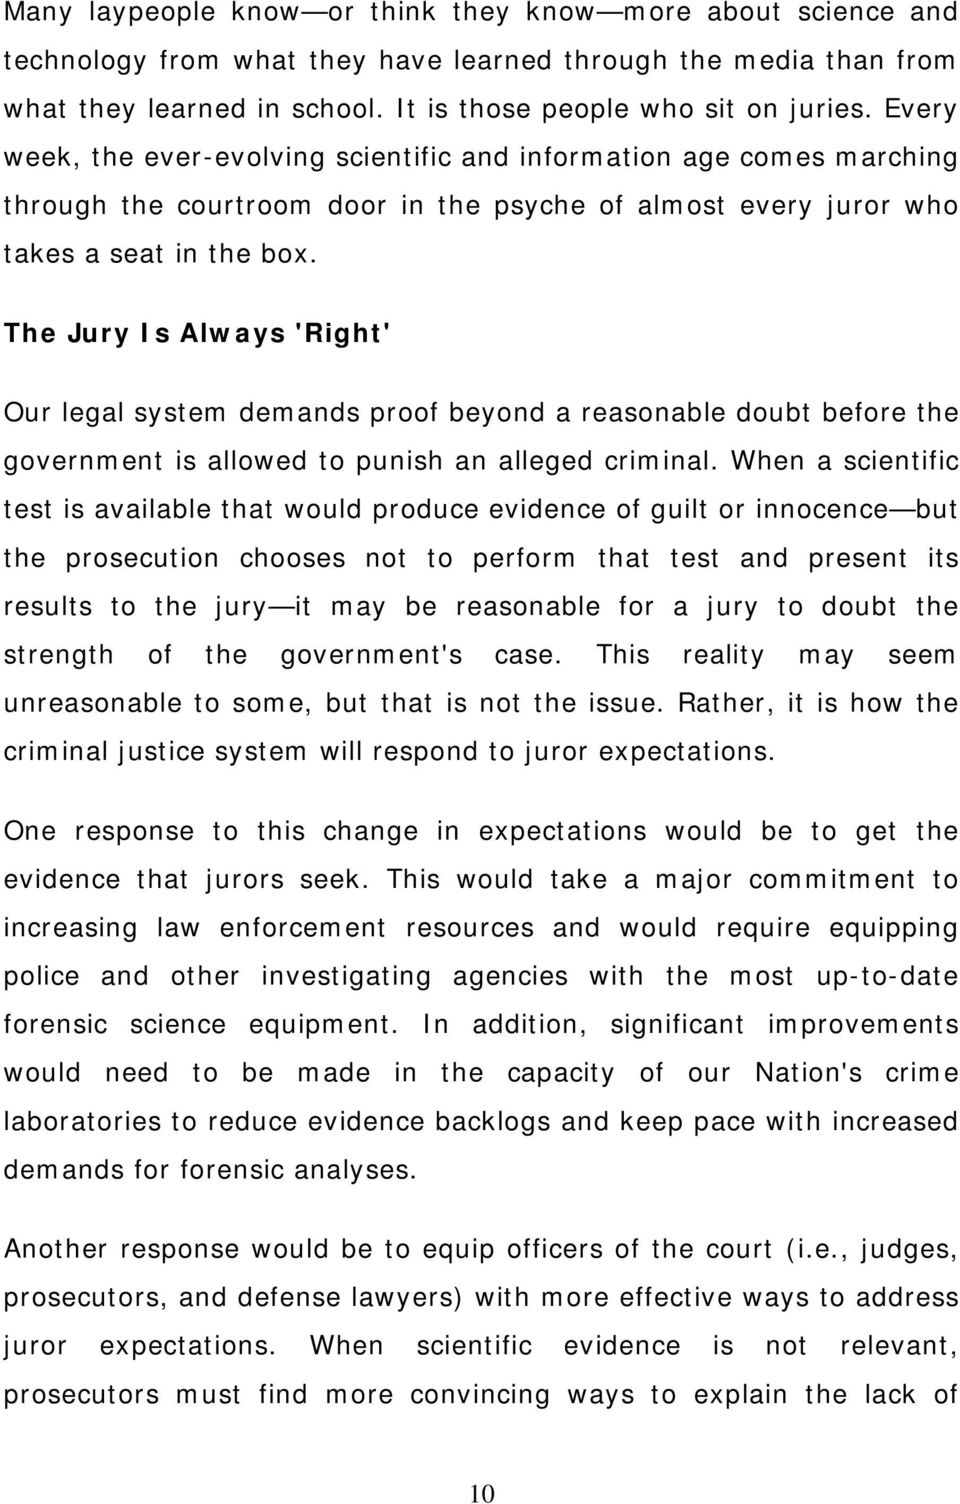 The Jury Is Always 'Right' Our legal system demands proof beyond a reasonable doubt before the government is allowed to punish an alleged criminal.